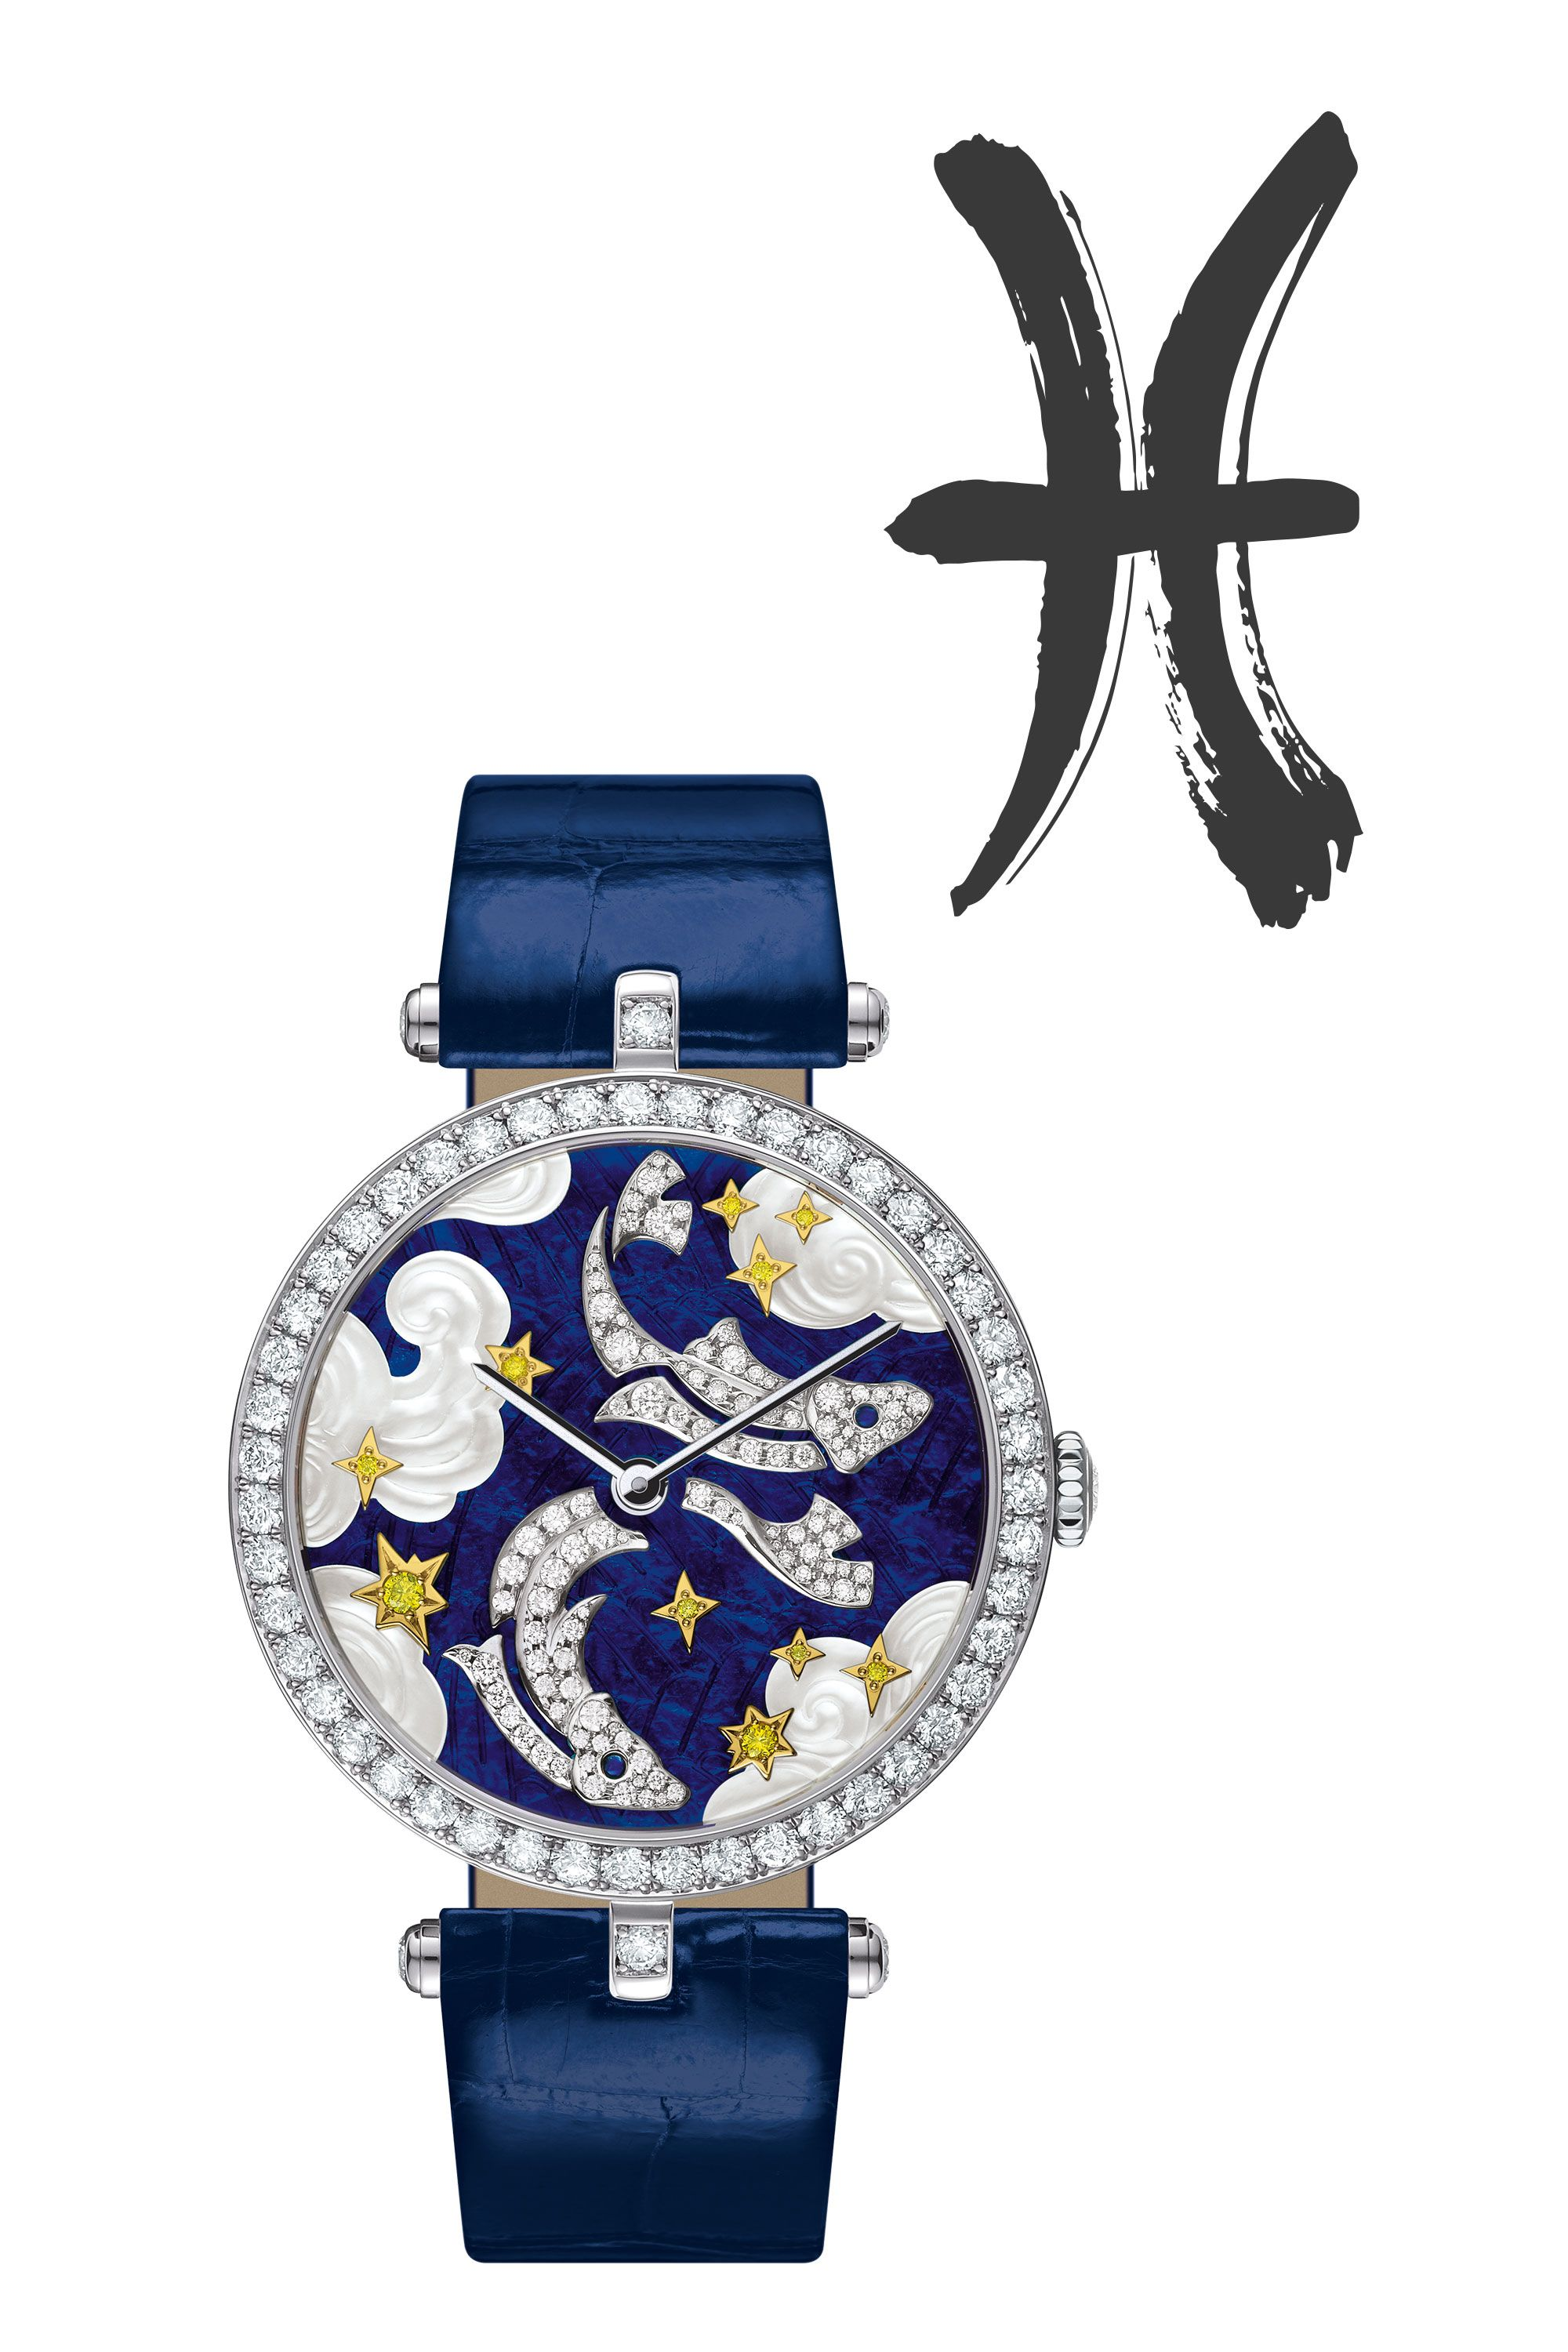 "<p><strong data-redactor-tag=""strong"" data-verified=""redactor"">February 18&nbsp&#x3B;- March 20</strong></p><p>The Van Cleef &amp&#x3B; Arpels Poetic Astronomy collection has a watch&nbsp&#x3B;for each&nbsp&#x3B;sign. This&nbsp&#x3B;22-piece limited edition white gold ""Pisces"" nods to&nbsp&#x3B;the artistic and intuitive water sign with mother-of-pearl waves&#x3B;&nbsp&#x3B;diamond-set&nbsp&#x3B;fish with gold stars and yellow diamonds add an elegant touch.&nbsp&#x3B;</p><p><em data-redactor-tag=""em"" data-verified=""redactor"">Van Cleef &amp&#x3B; Arpels&nbsp&#x3B;<span class=""redactor-invisible-space"" data-verified=""redactor"" data-redactor-tag=""span"" data-redactor-class=""redactor-invisible-space""></span>Lady Arpels Zodiac ""Pisces"" Watch, $98,000</em></p><p><span class=""redactor-invisible-space""><strong data-verified=""redactor"" data-redactor-tag=""strong"">BUY IT:&nbsp&#x3B;<a href=""http://www.vancleefarpels.com/us/en/collections/watches/extraordinary-dials/vcaro4ic00-lady-arpels-zodiac-pisces-watch.html"" target=""_blank"">vancleefarpels.com</a><span class=""redactor-invisible-space"">.&nbsp&#x3B;</span></strong></span></p>"